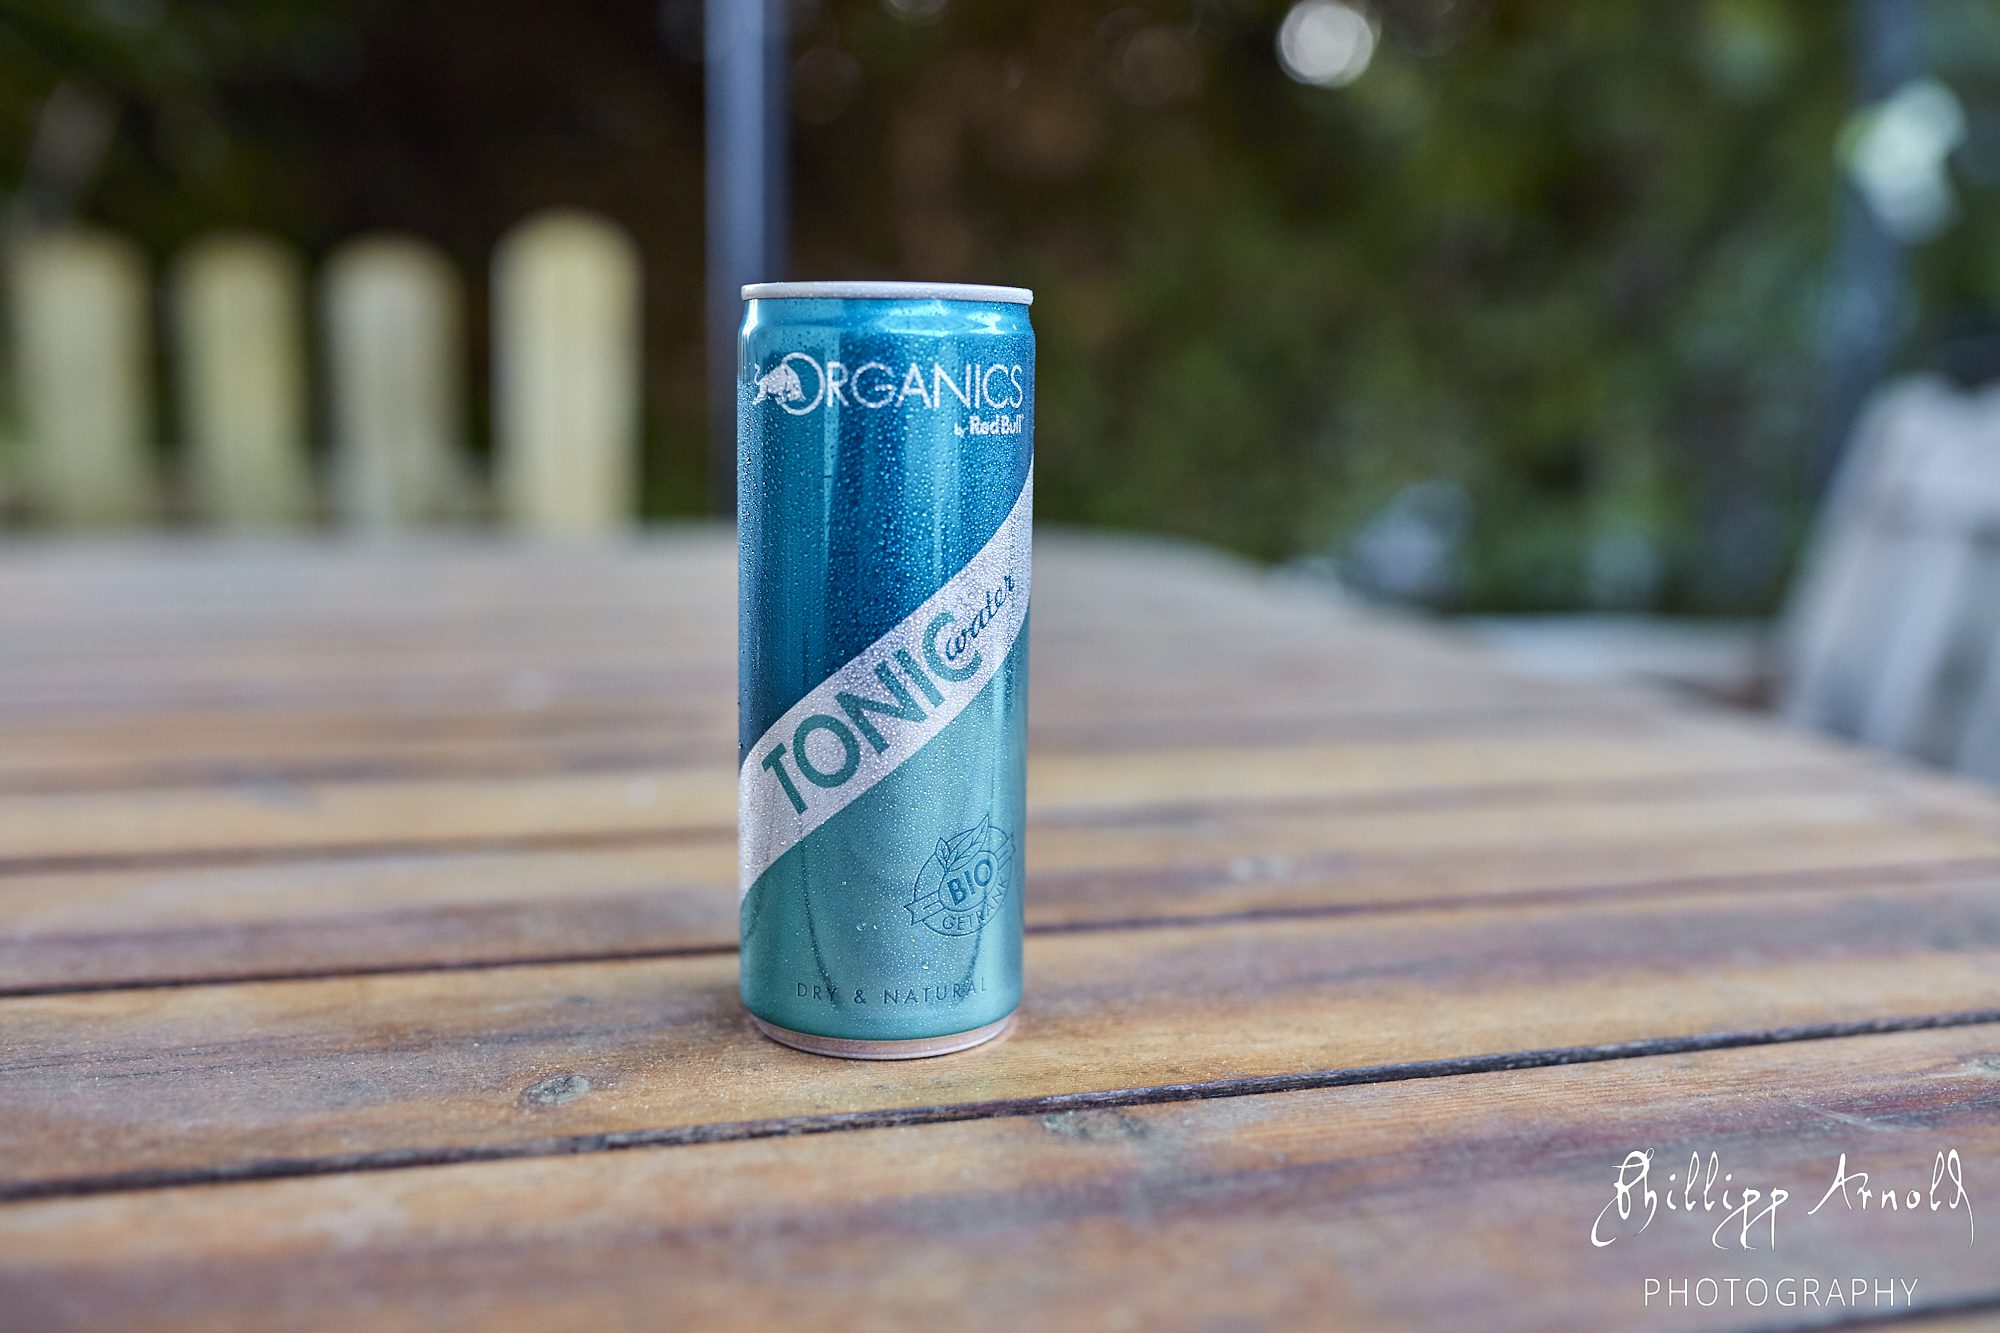 Tonic Water - Red Bull Organics Tonic Water